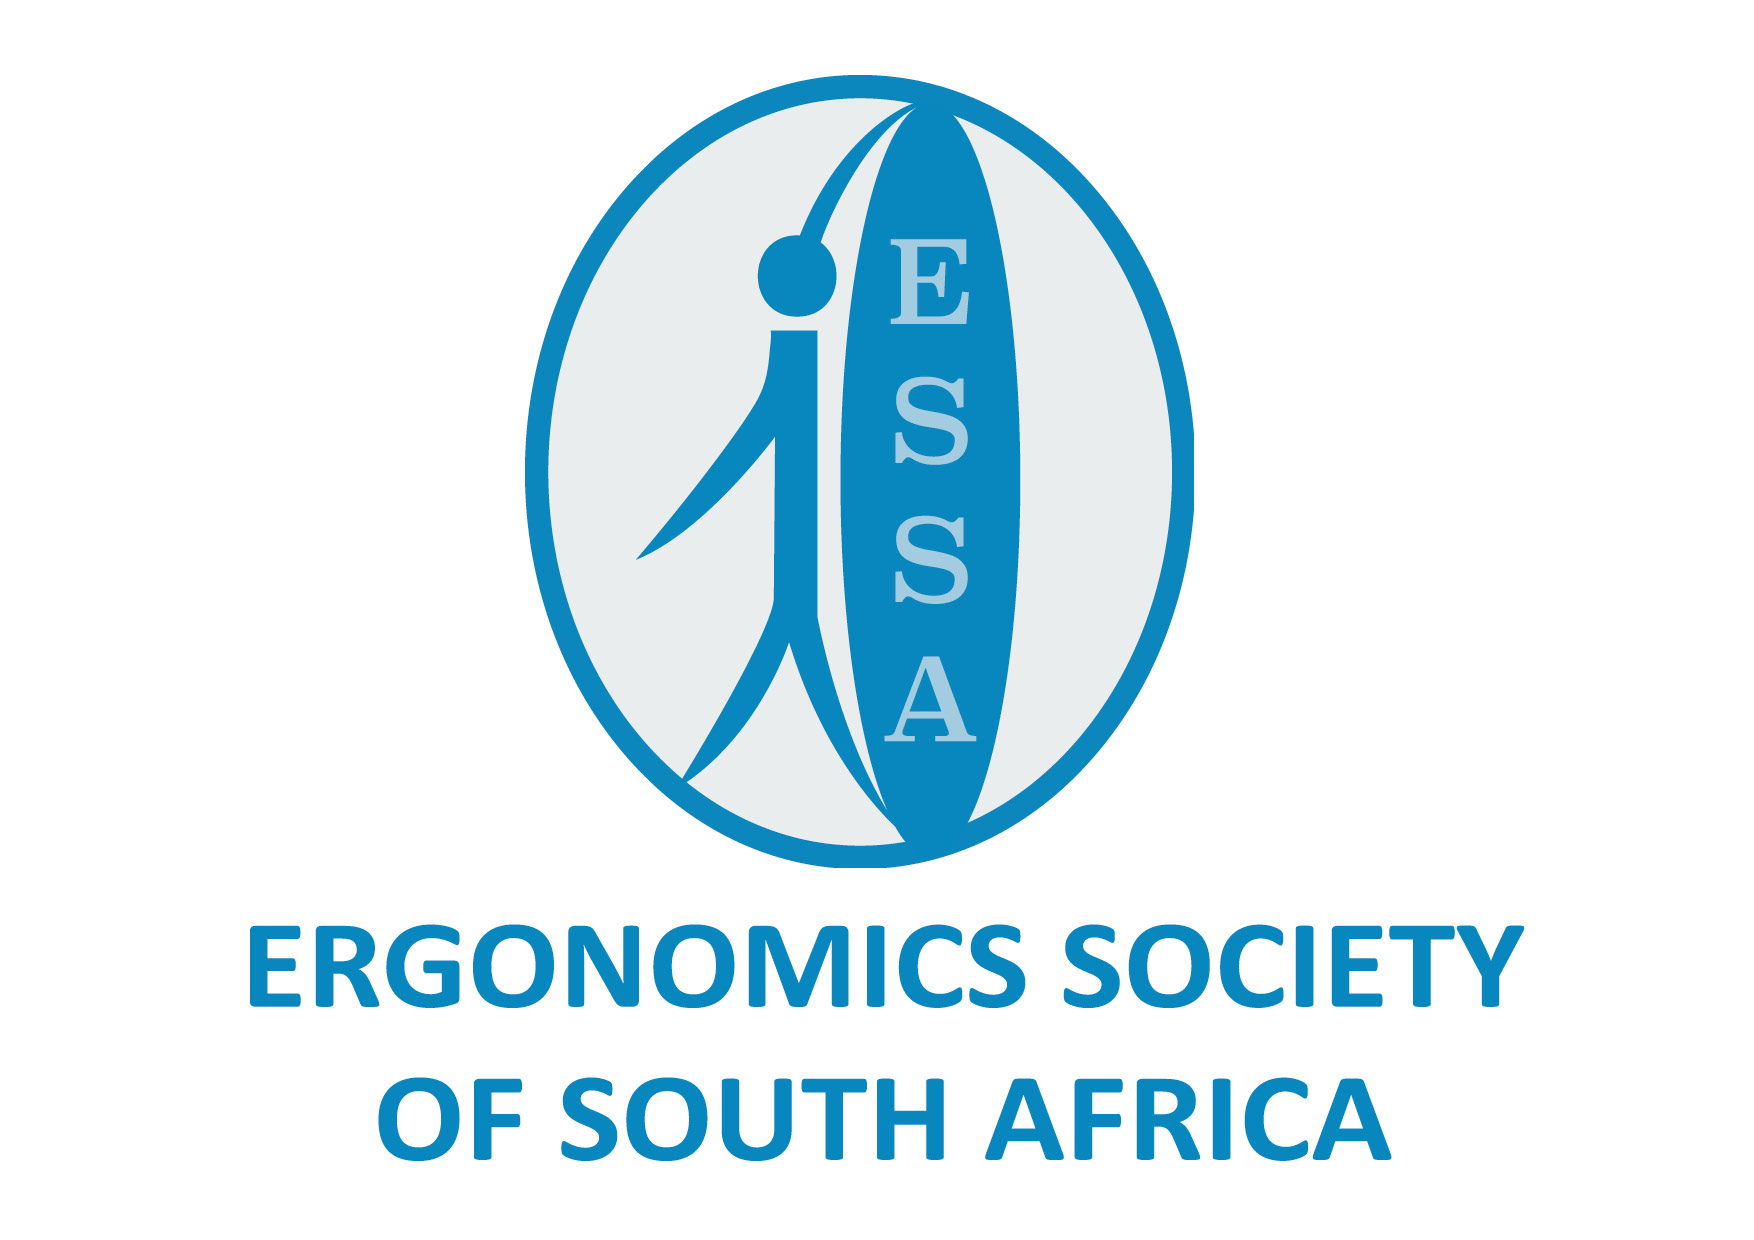 Ergonomics Society of South Africa